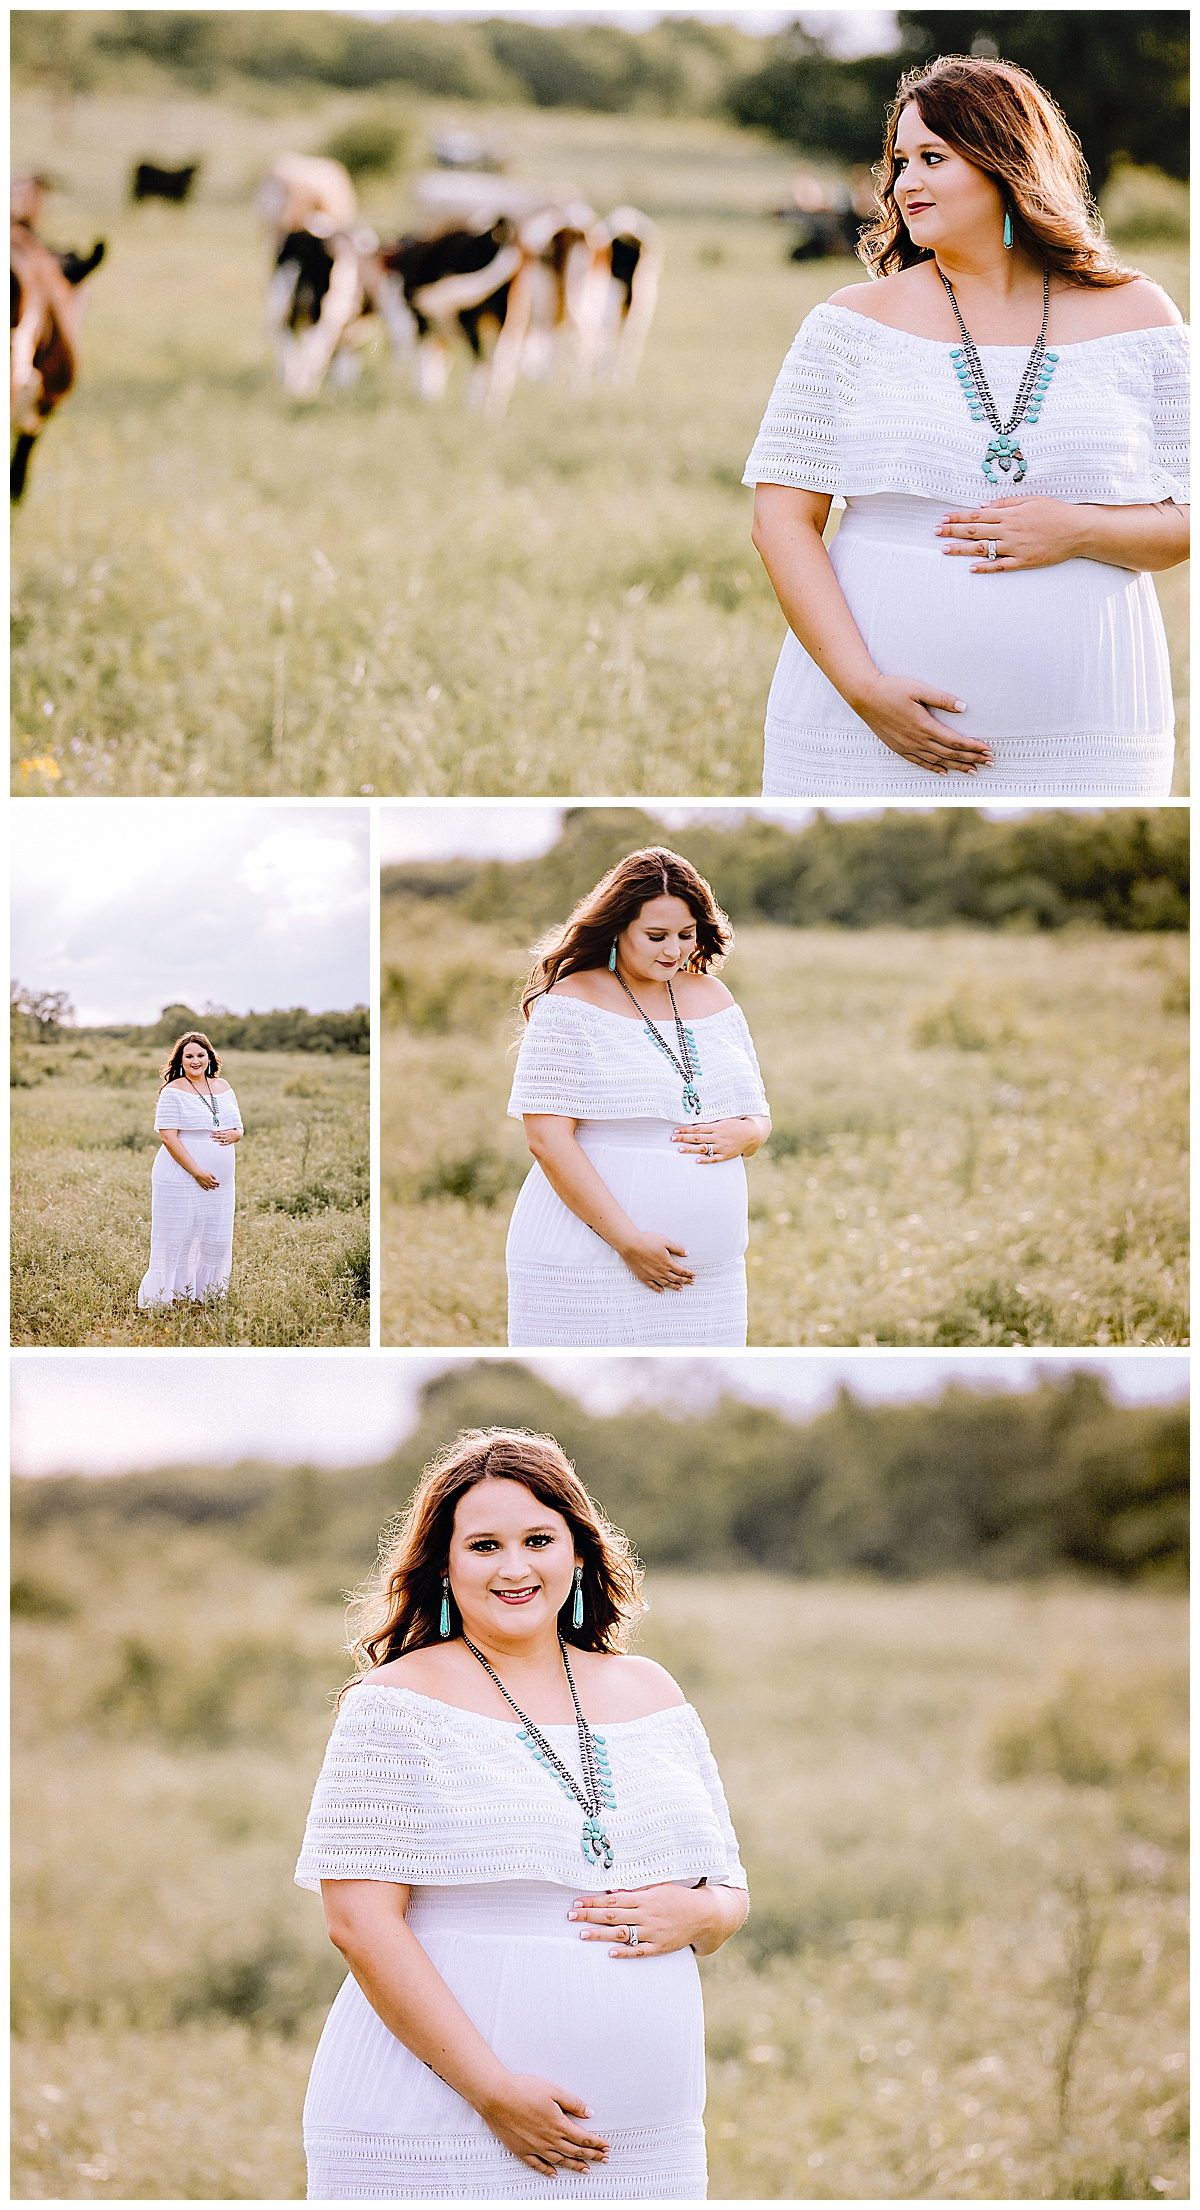 Rustic-Maternity-Session-Texas-Sunset-Carly-Barton-Photography_0066.jpg